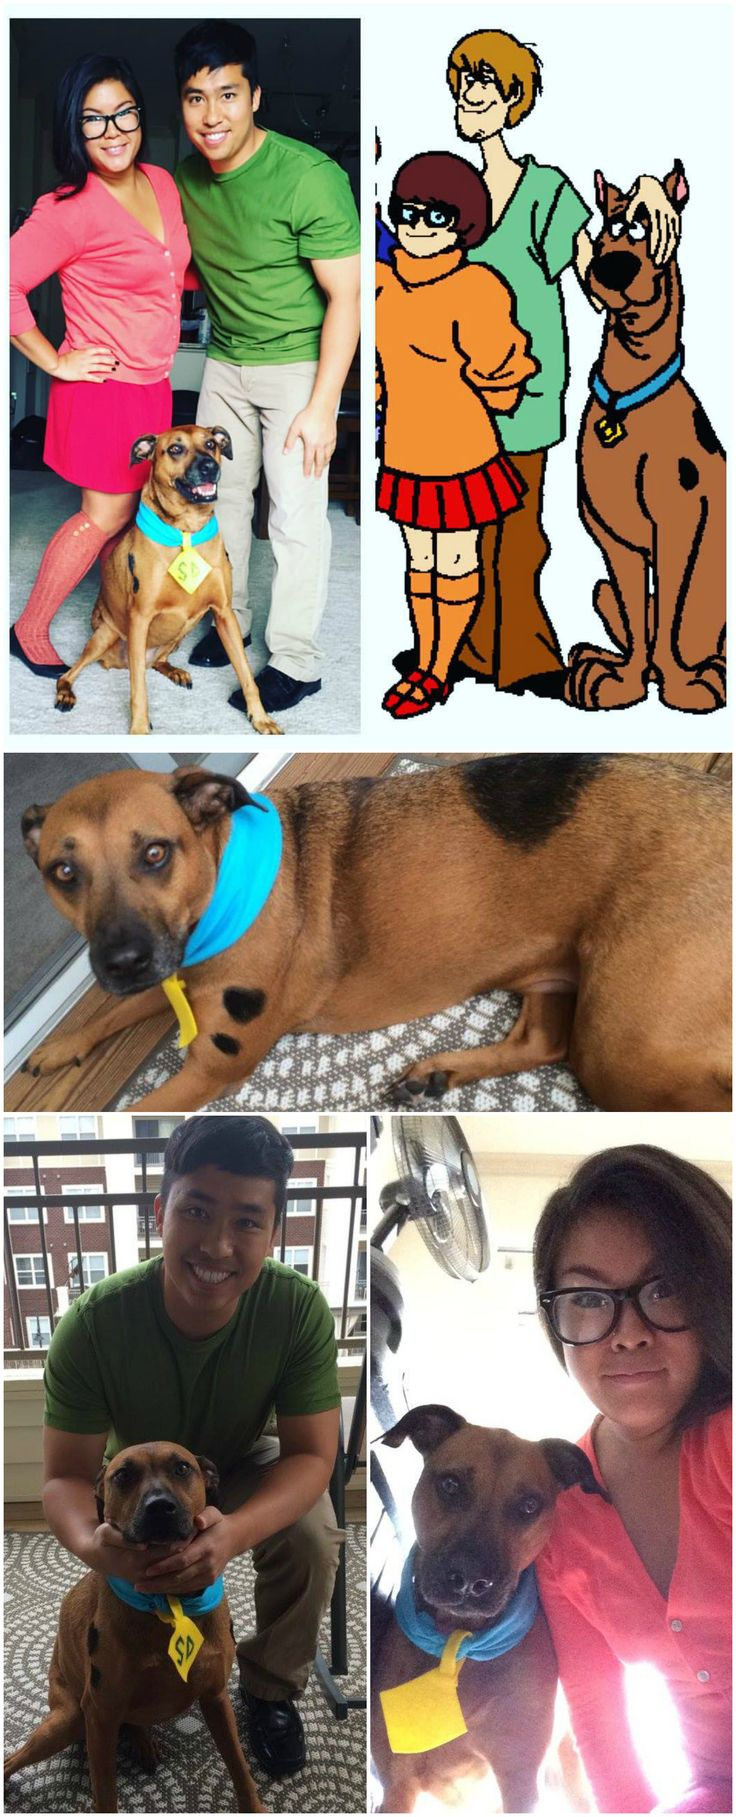 Scooby Doo Dress Up. Easy diy costumes. Dog costume painted spots made the dog tag out of felt and used a blue bandana for the collar. halloween costume scooby, shaggy, and velma - jinkies! mut boxer ridgeback dog. diy costumes with dogs, scooby doo cosplay. Rhodesian Ridgeback, PitBull mutt. #chloebearpawdventures